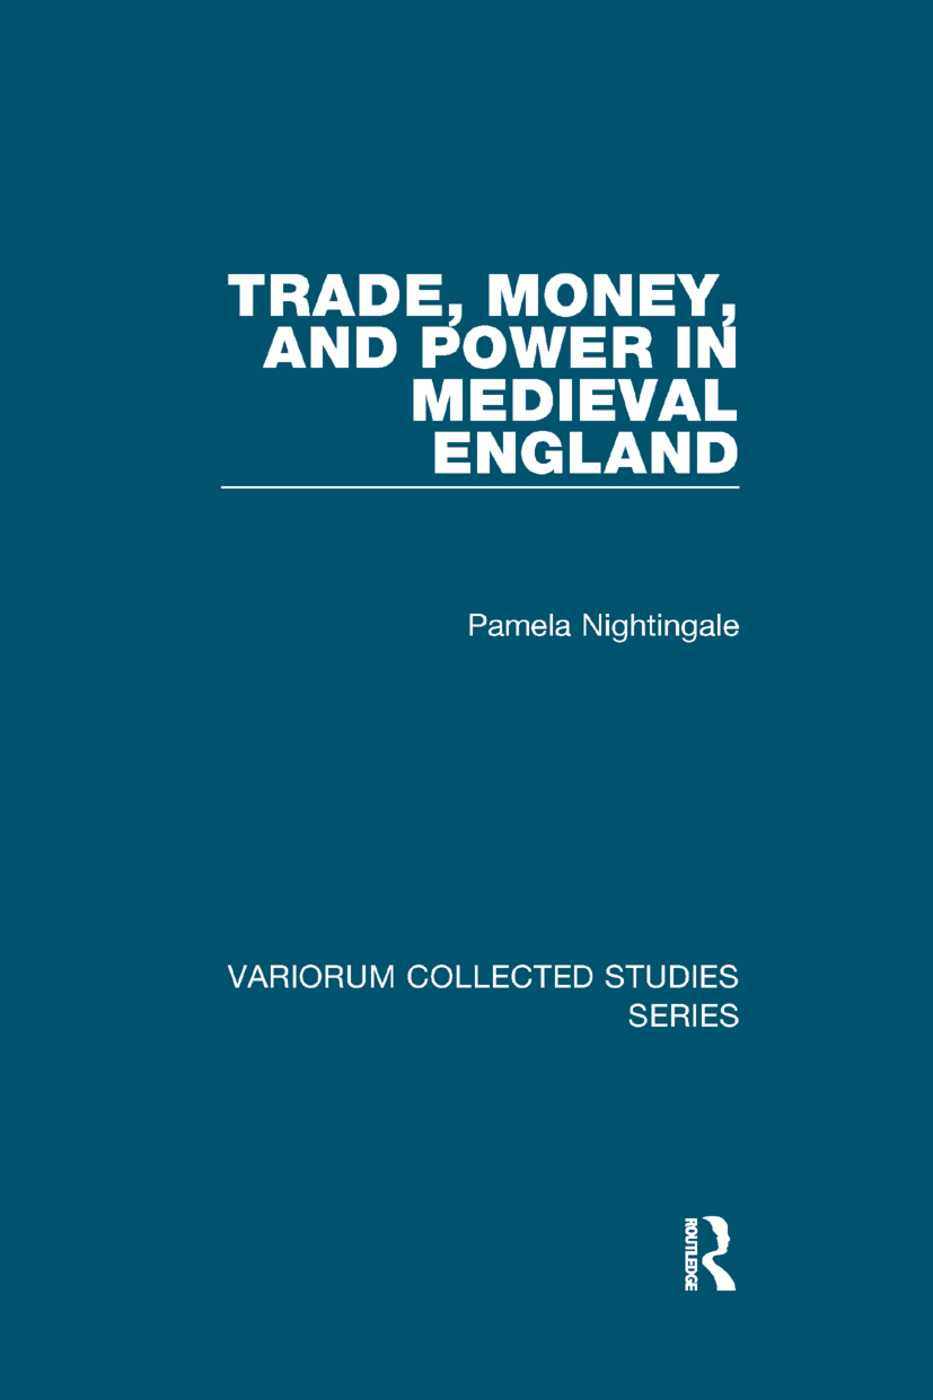 Trade, Money, and Power in Medieval England book cover